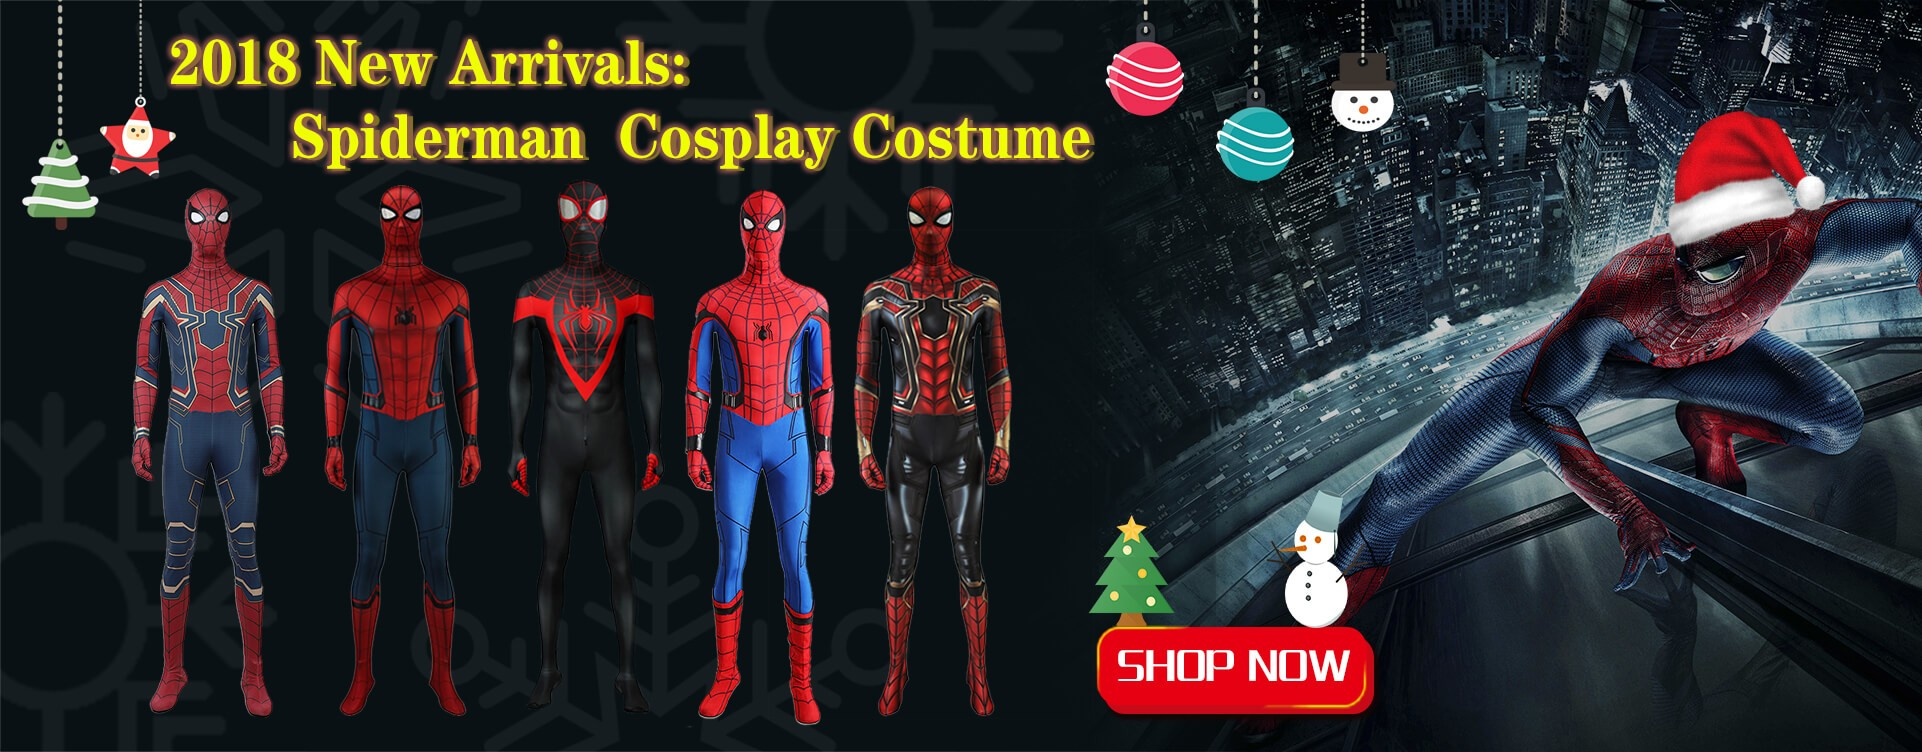 2018 New Arrivals: Spiderman Cosplay Costume Fullbody Jumpsuit